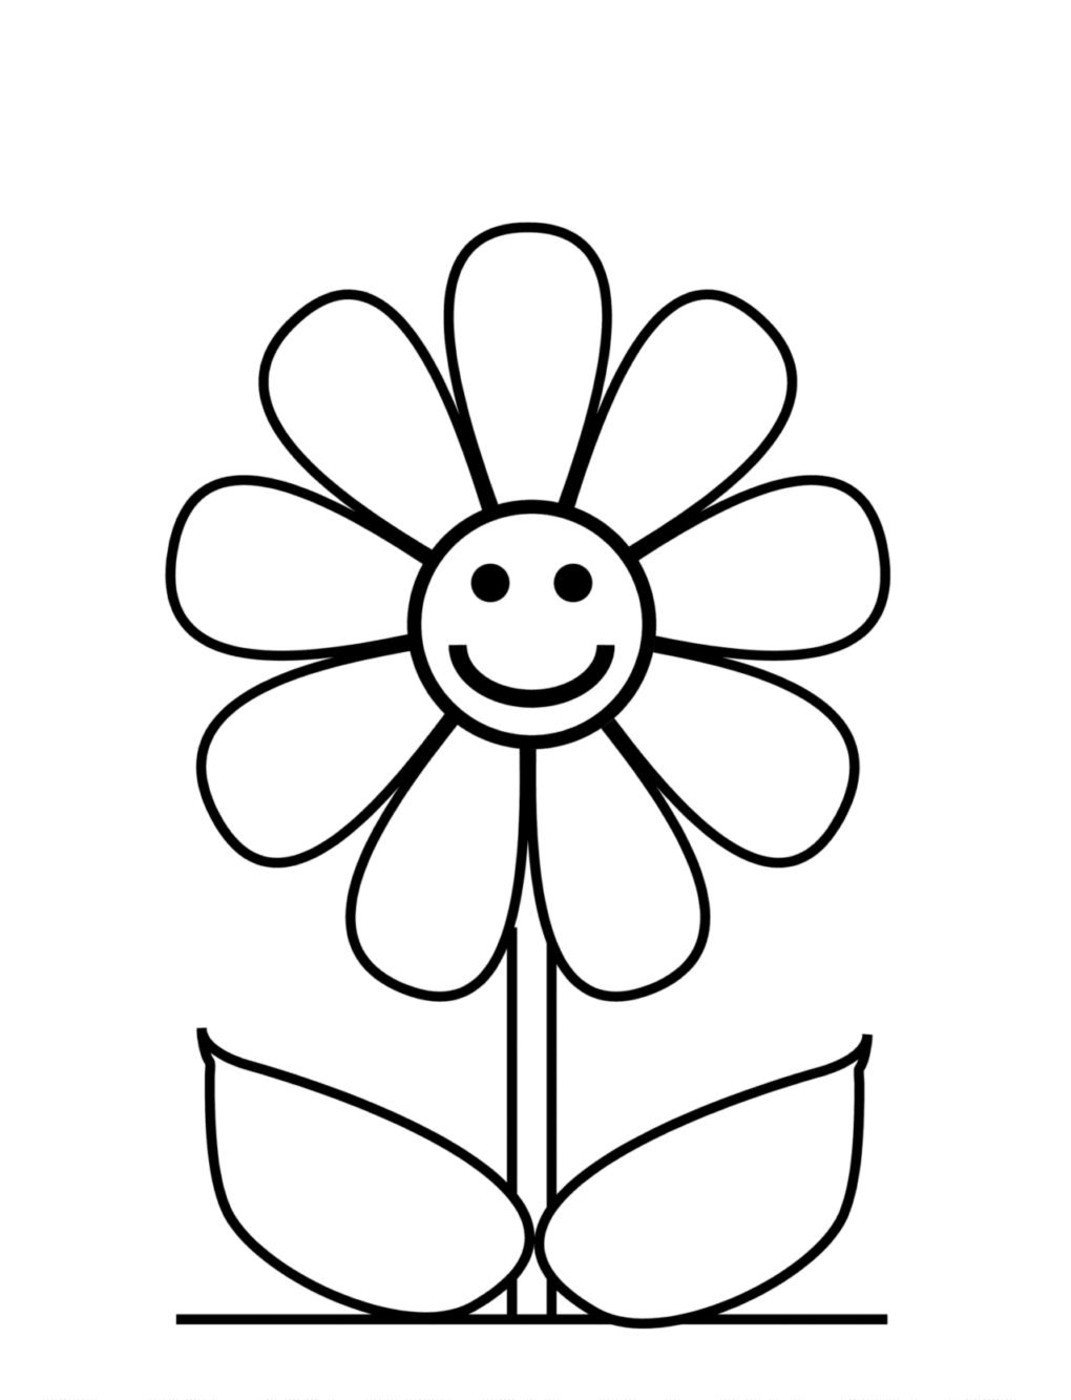 Sunflower Drawing For Kids at GetDrawings.com | Free for personal ...